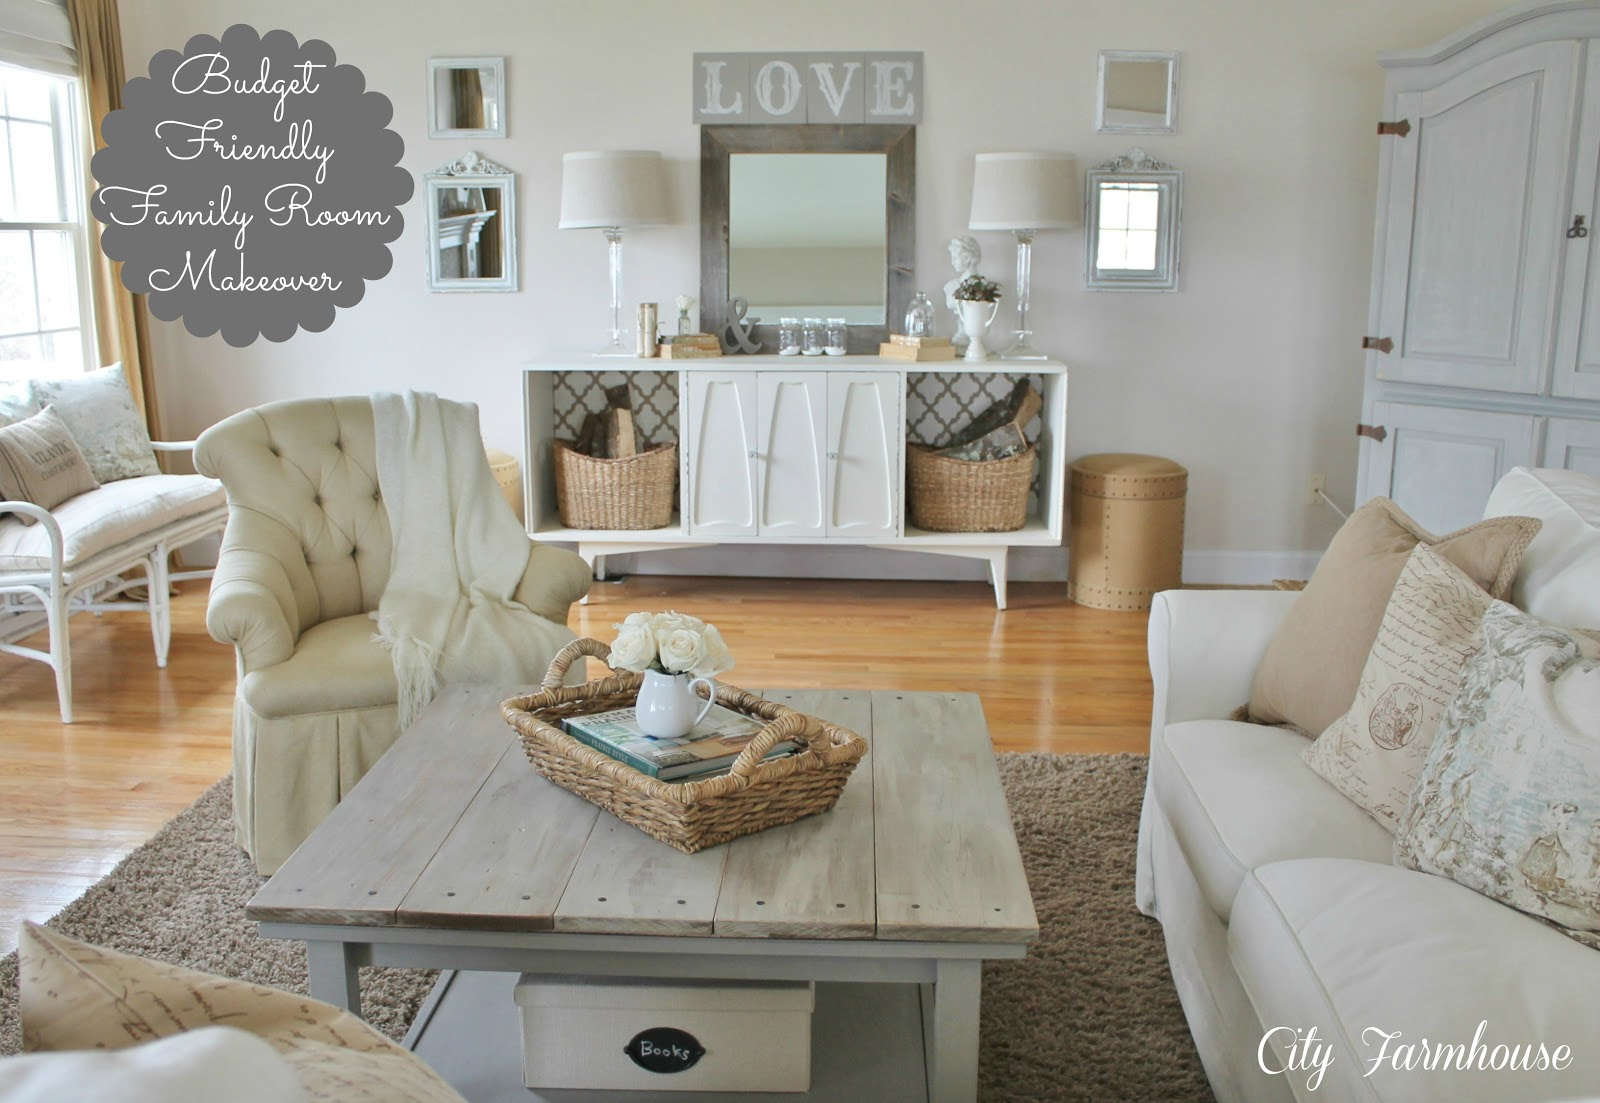 Family Room Reveal Thrifty Pretty Functional City